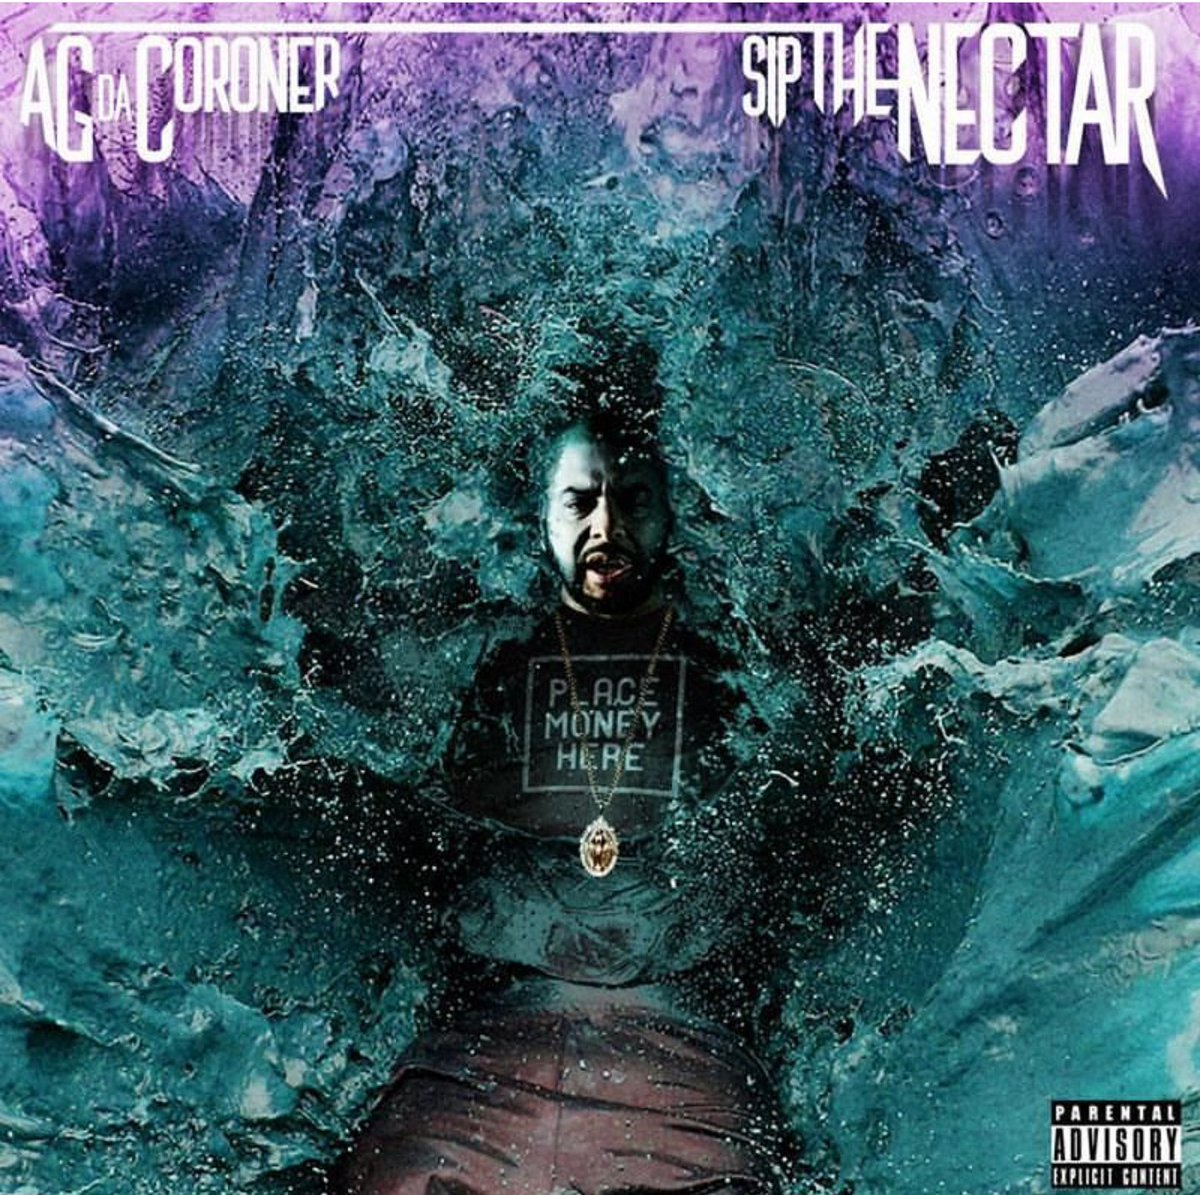 "New Music!!! @AgdaCoroner ""Sip The Nectar"" ft. @ActionBronson @Alchemist @rocmarci @LordNez @mreckgm & More https://t.co/U1PTggWoRA"